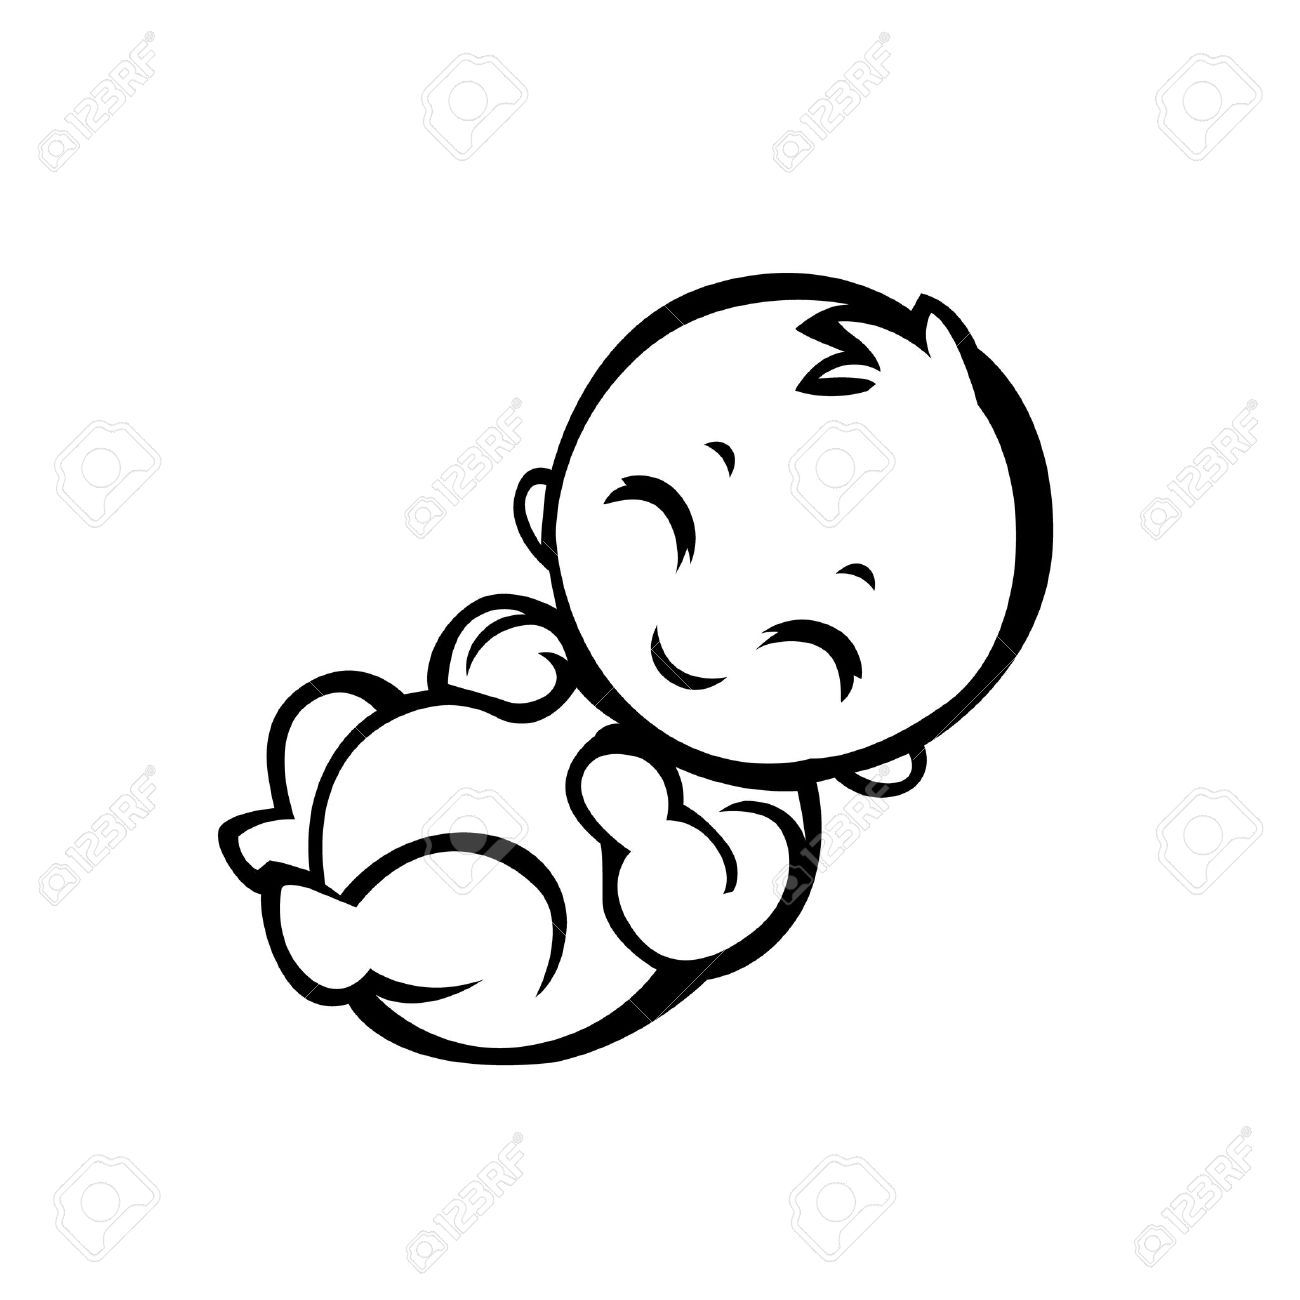 Newborn Little Baby Smiling With Small Arms And Legs